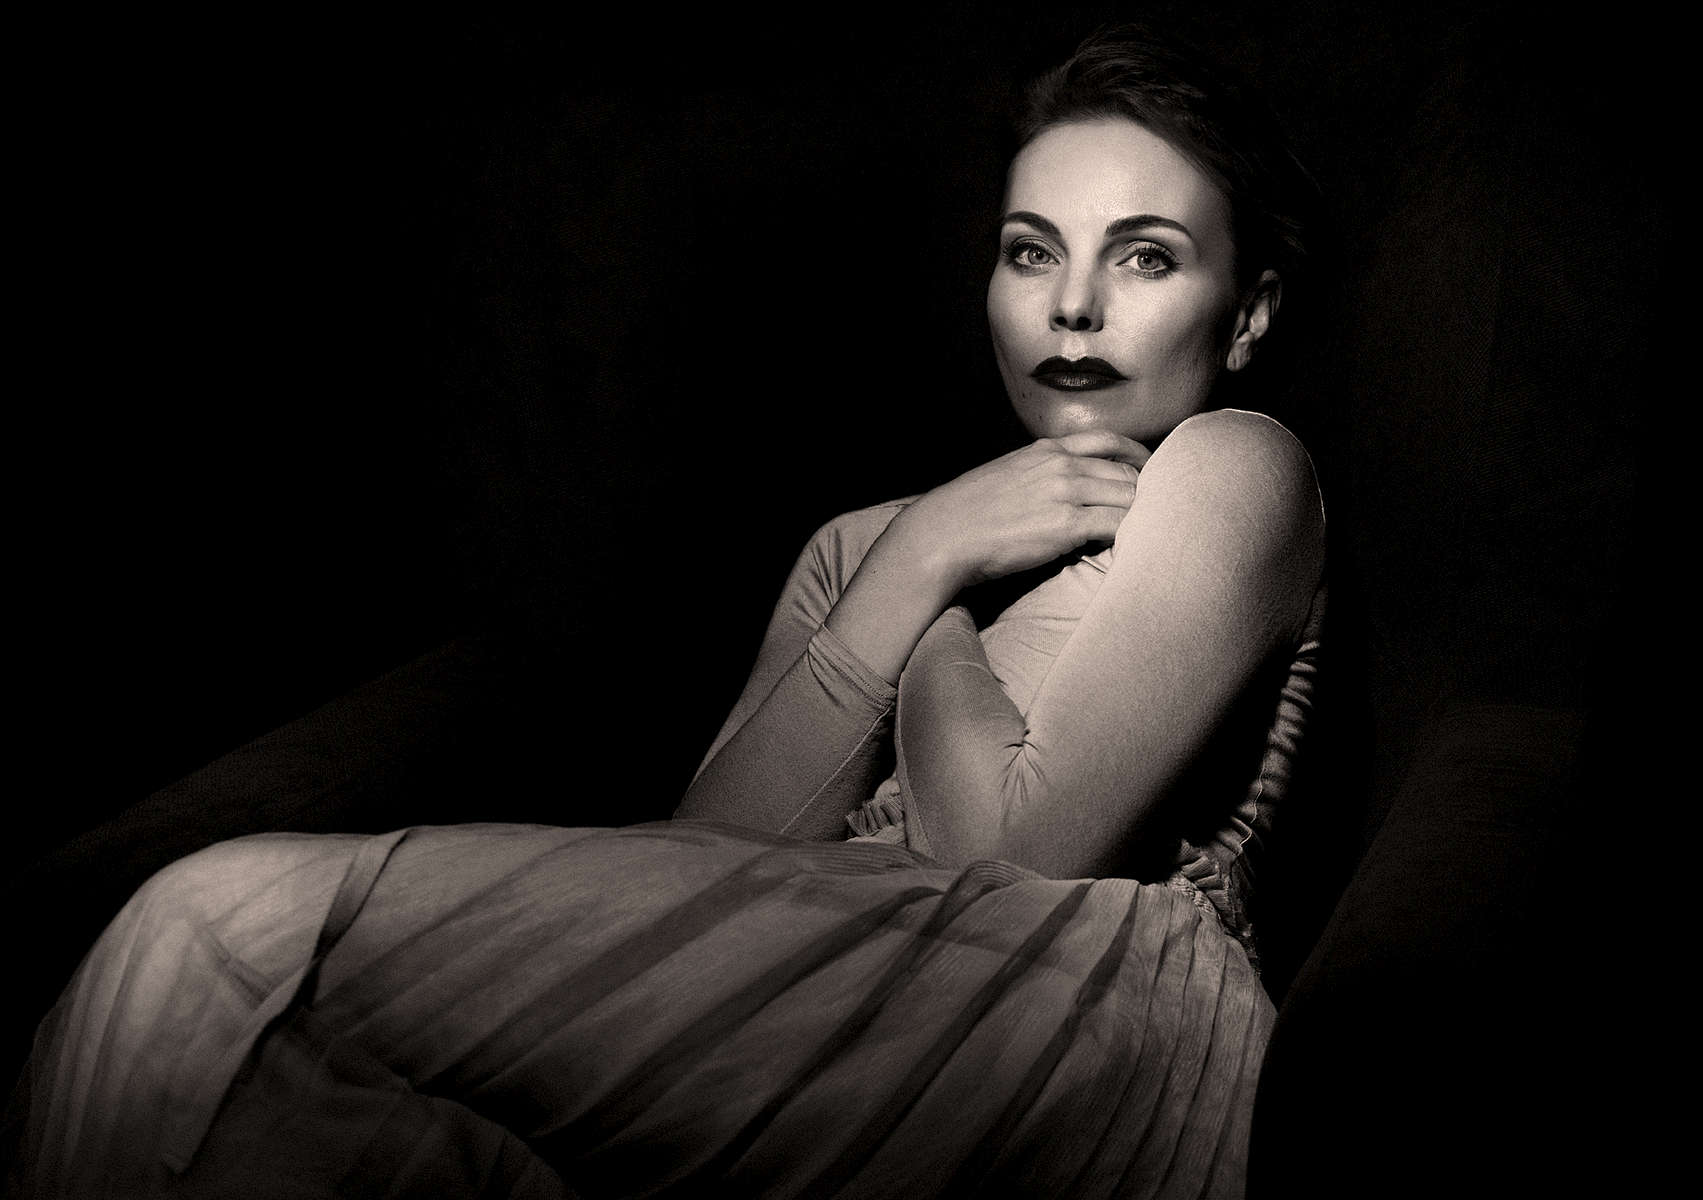 My wife, amazing and very beautiful model sitting on a chair creating this black and white film noir styled image.